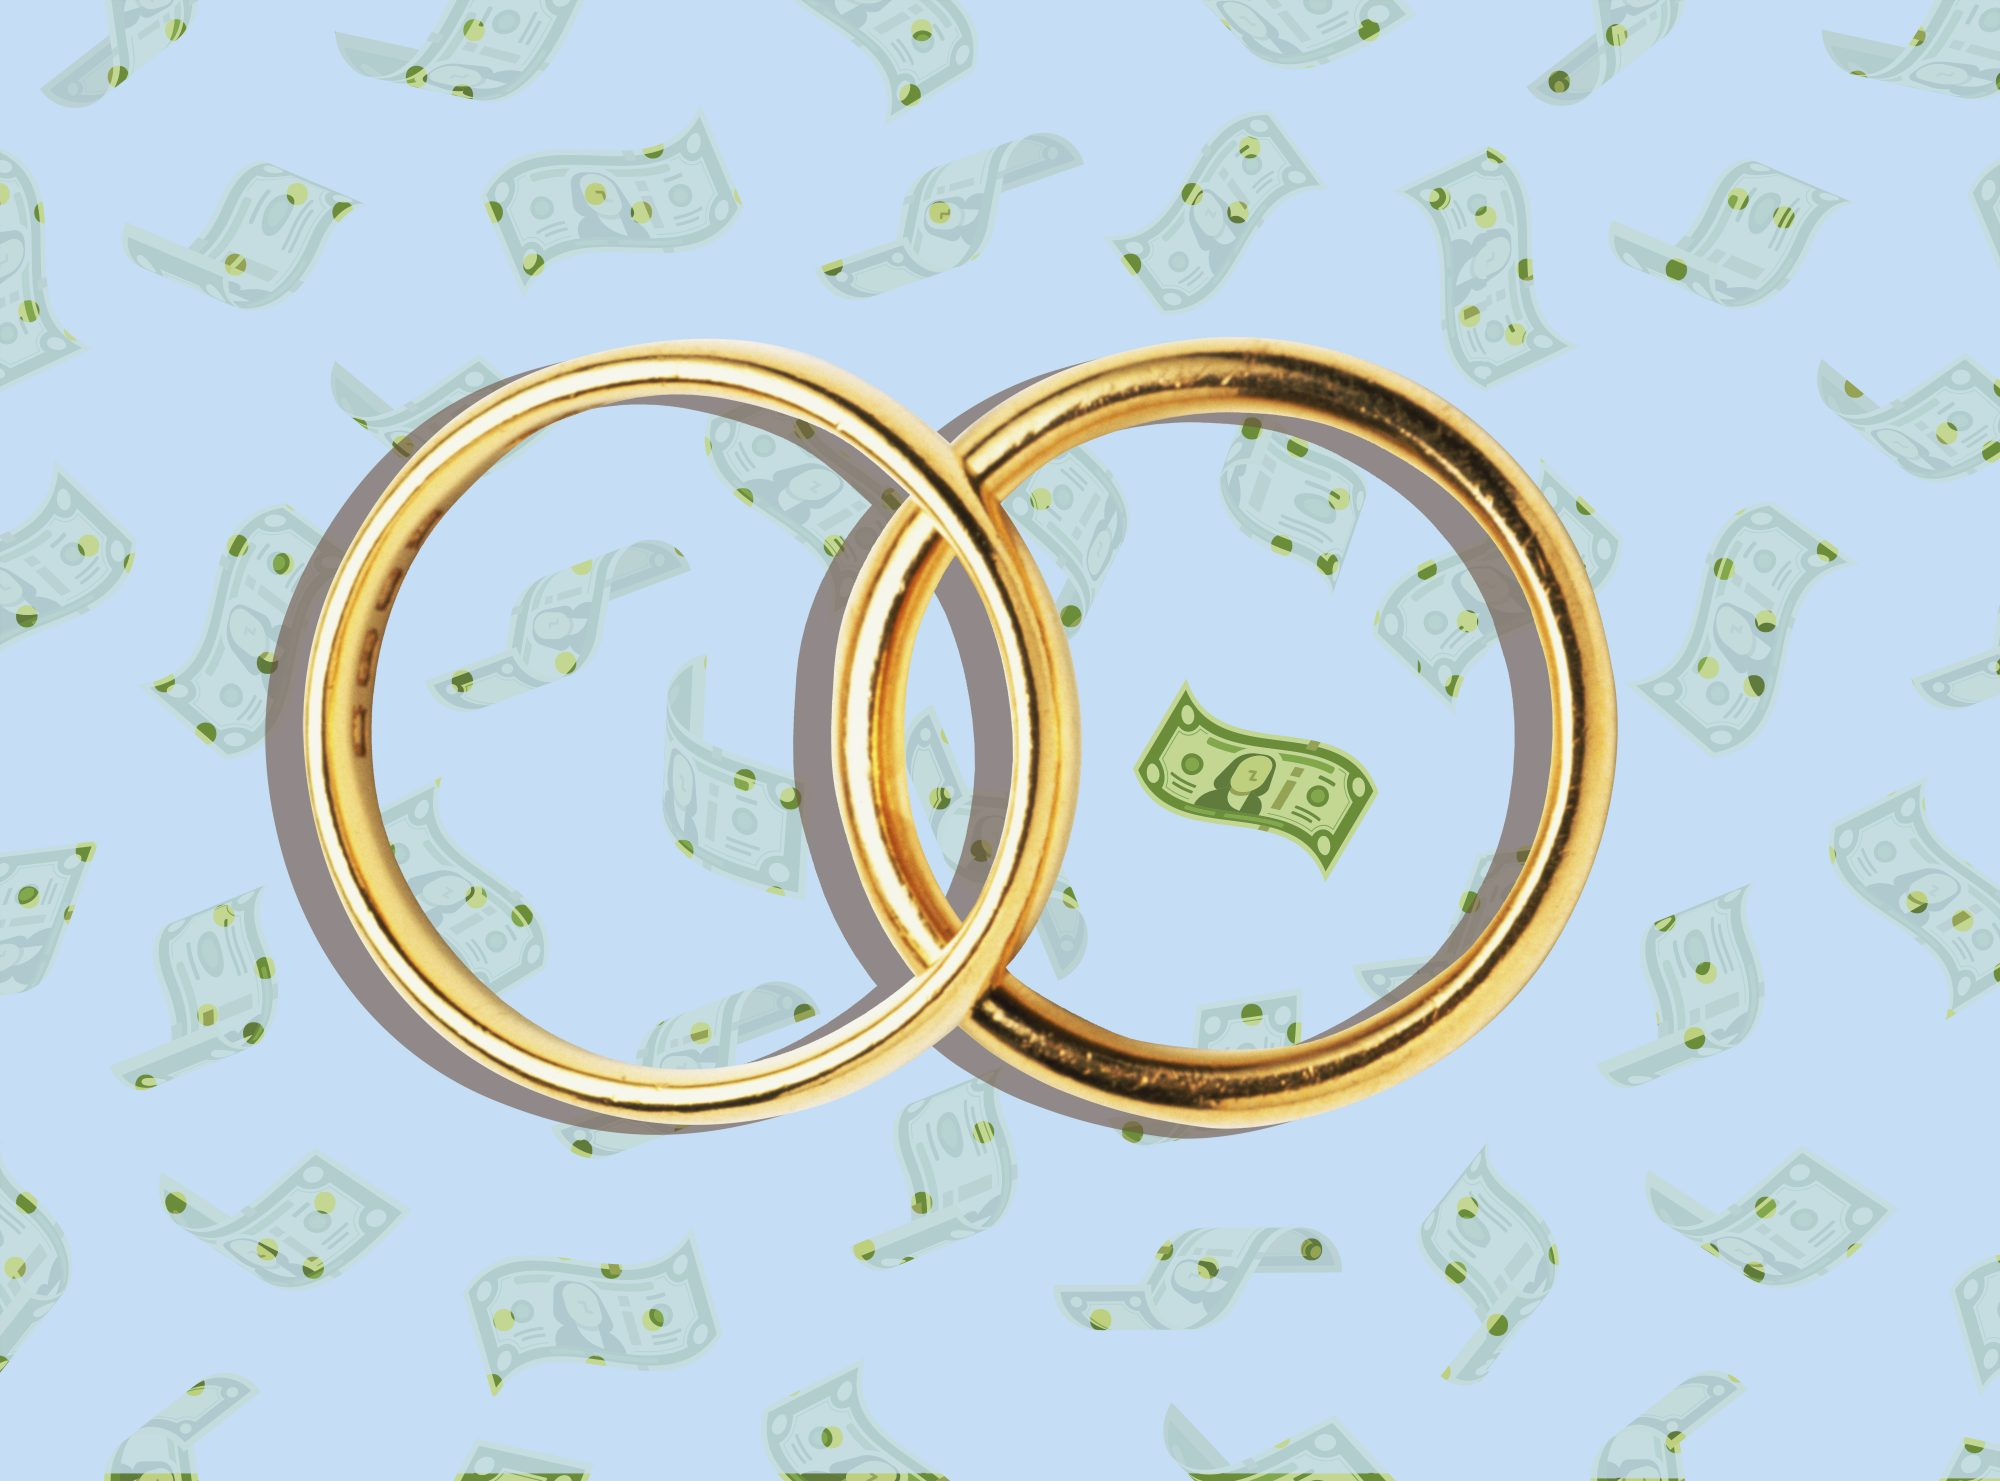 5 Conversations You Need to Have Before You Get Married